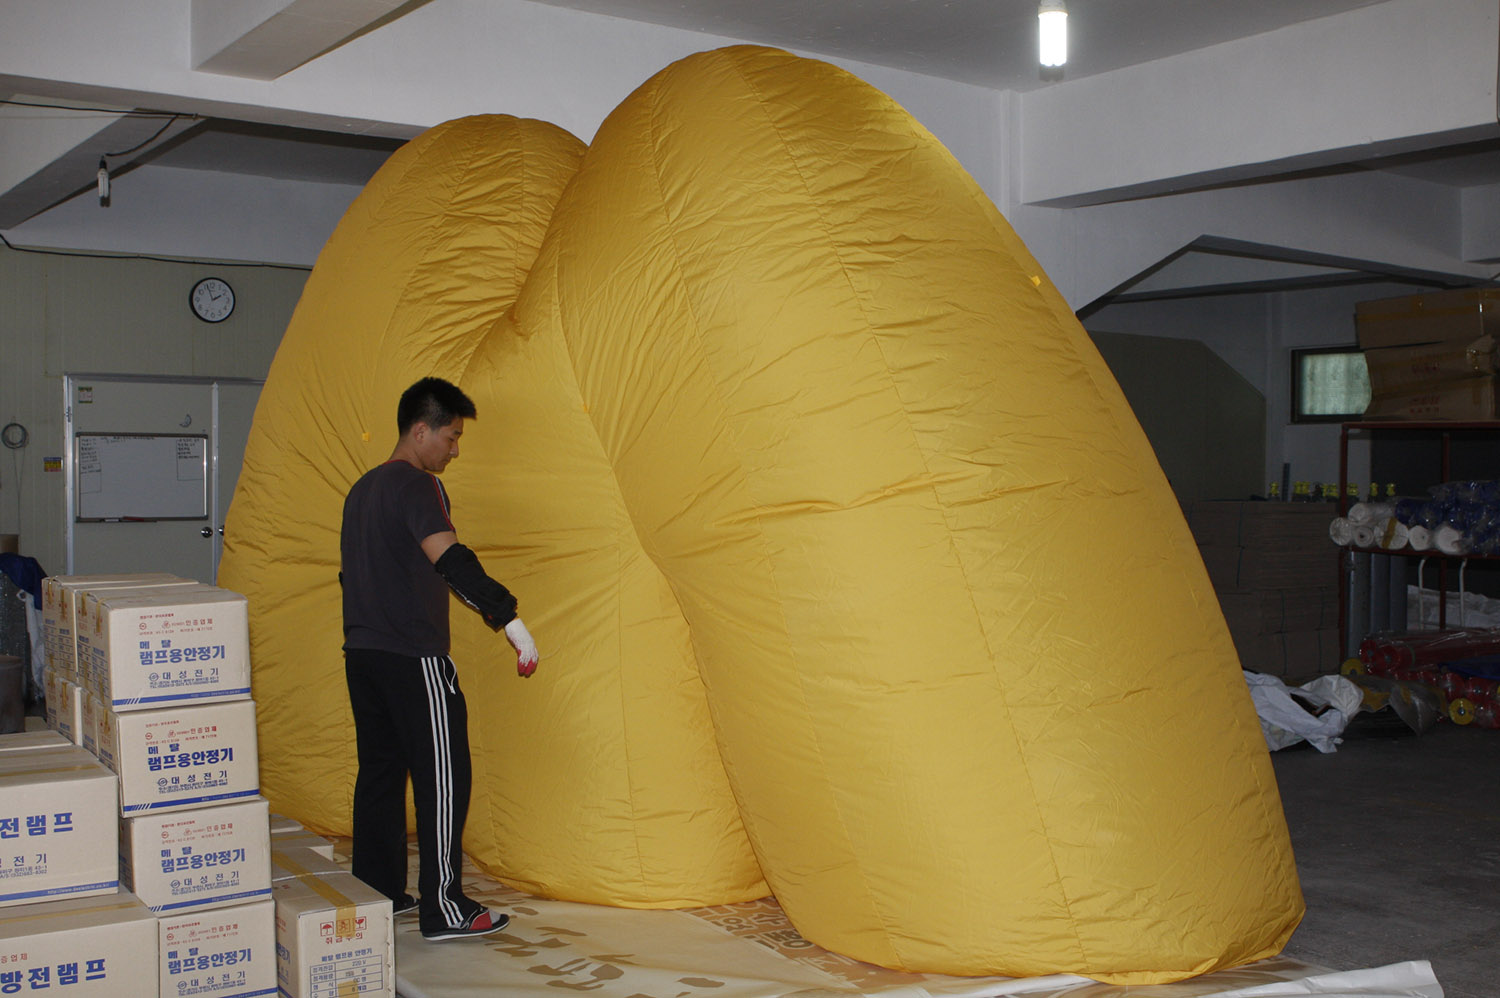 giant-bowl-inflatable-sculpture-05.jpg